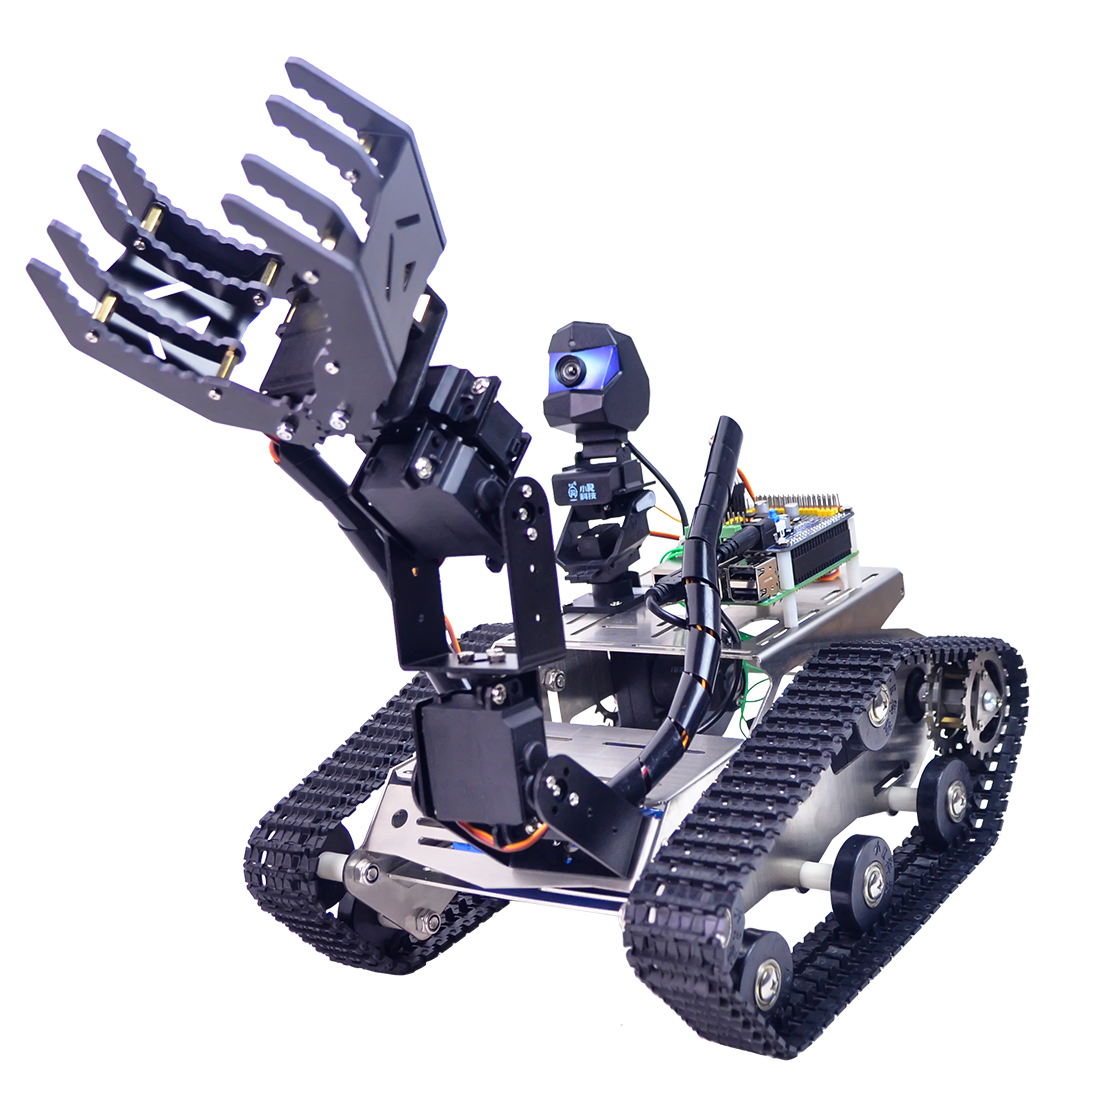 Programmable Robot DIY Wifi + Bluetooth Stainless Steel Chassis Track Tank Steam Educational Car With Arm For Raspberry Pi 3B+